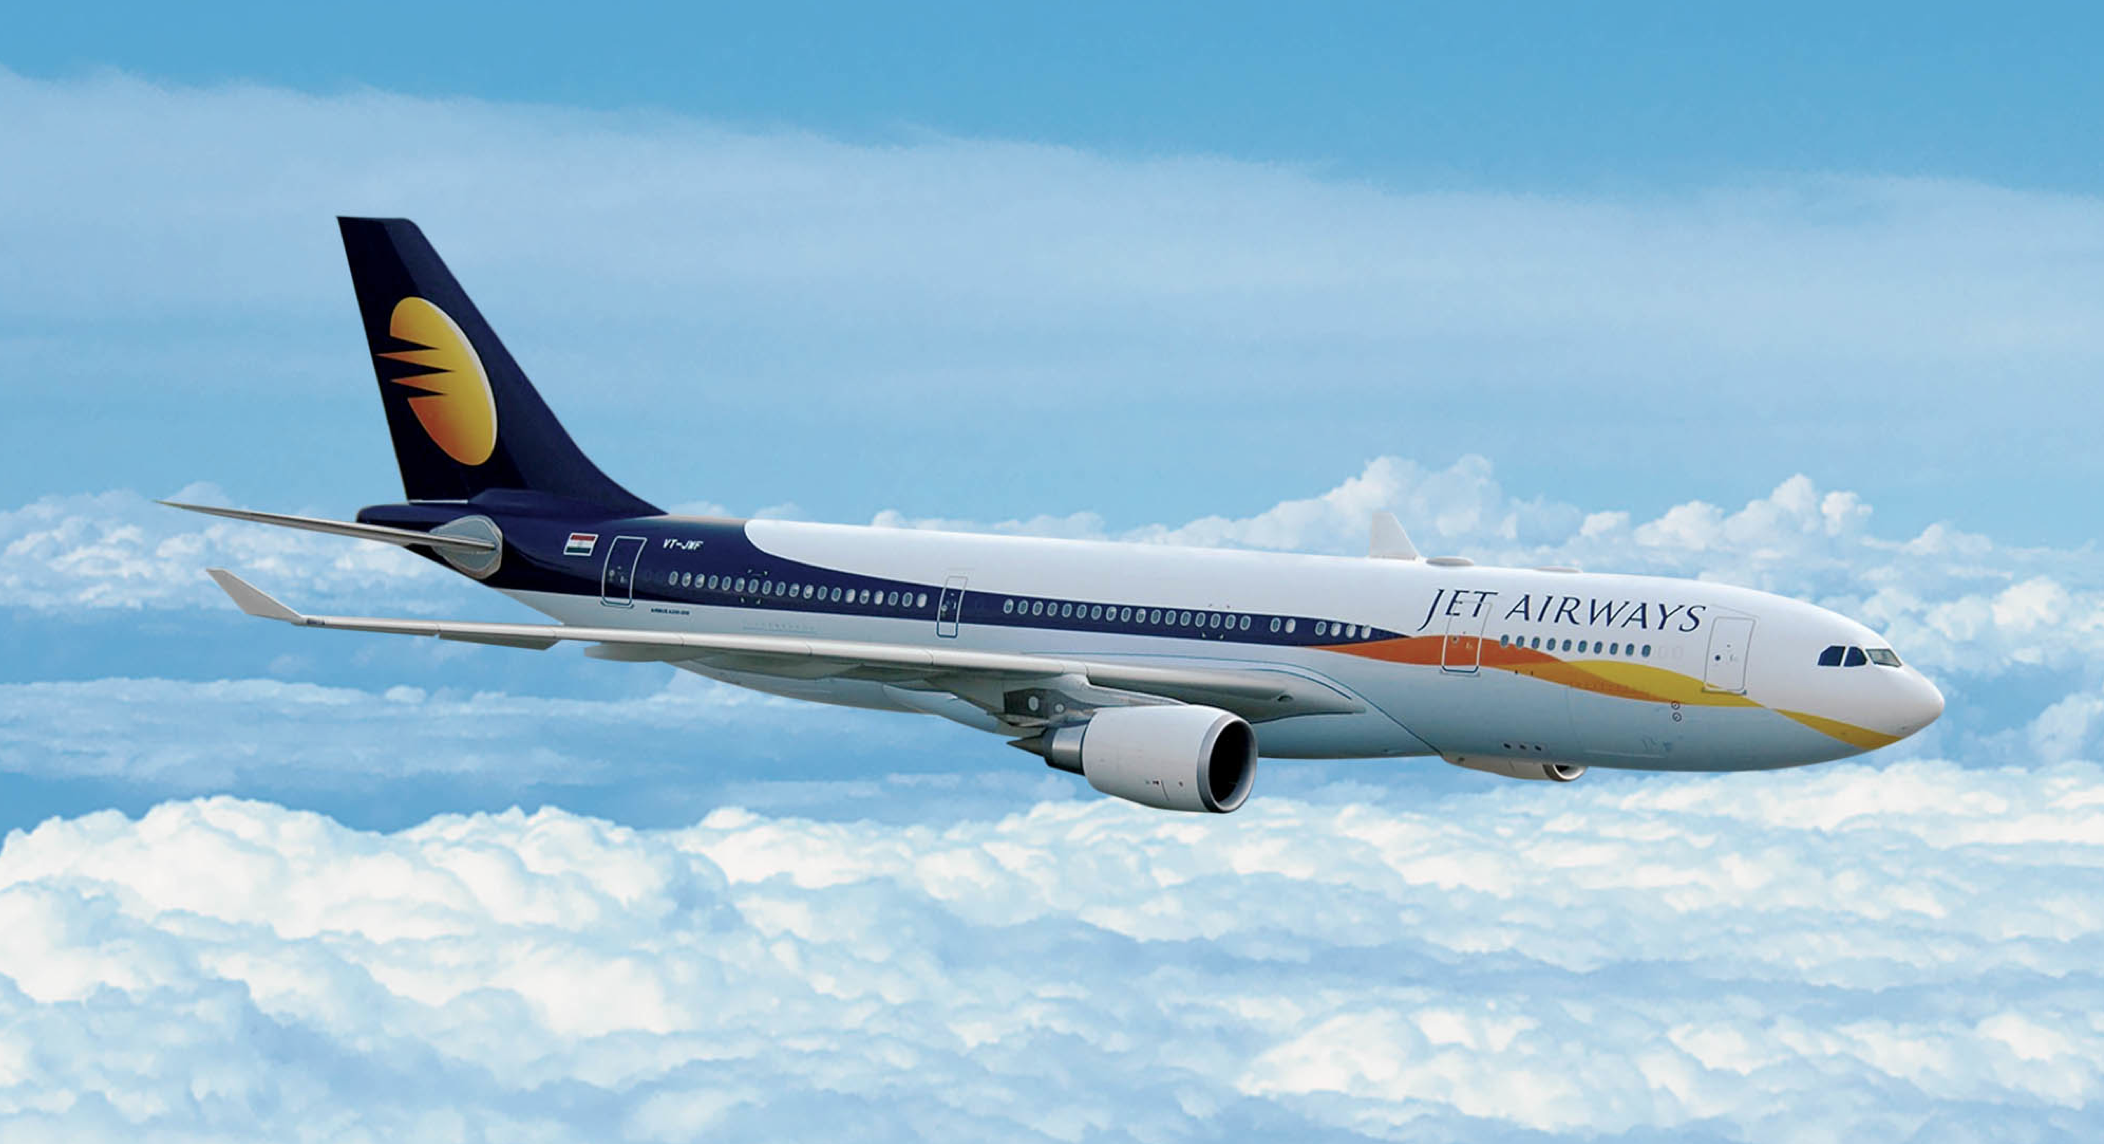 La compagnie Jet Airways espère devenir le premier transporteur entre l'Europe et l'Inde. DR Jet Airways.